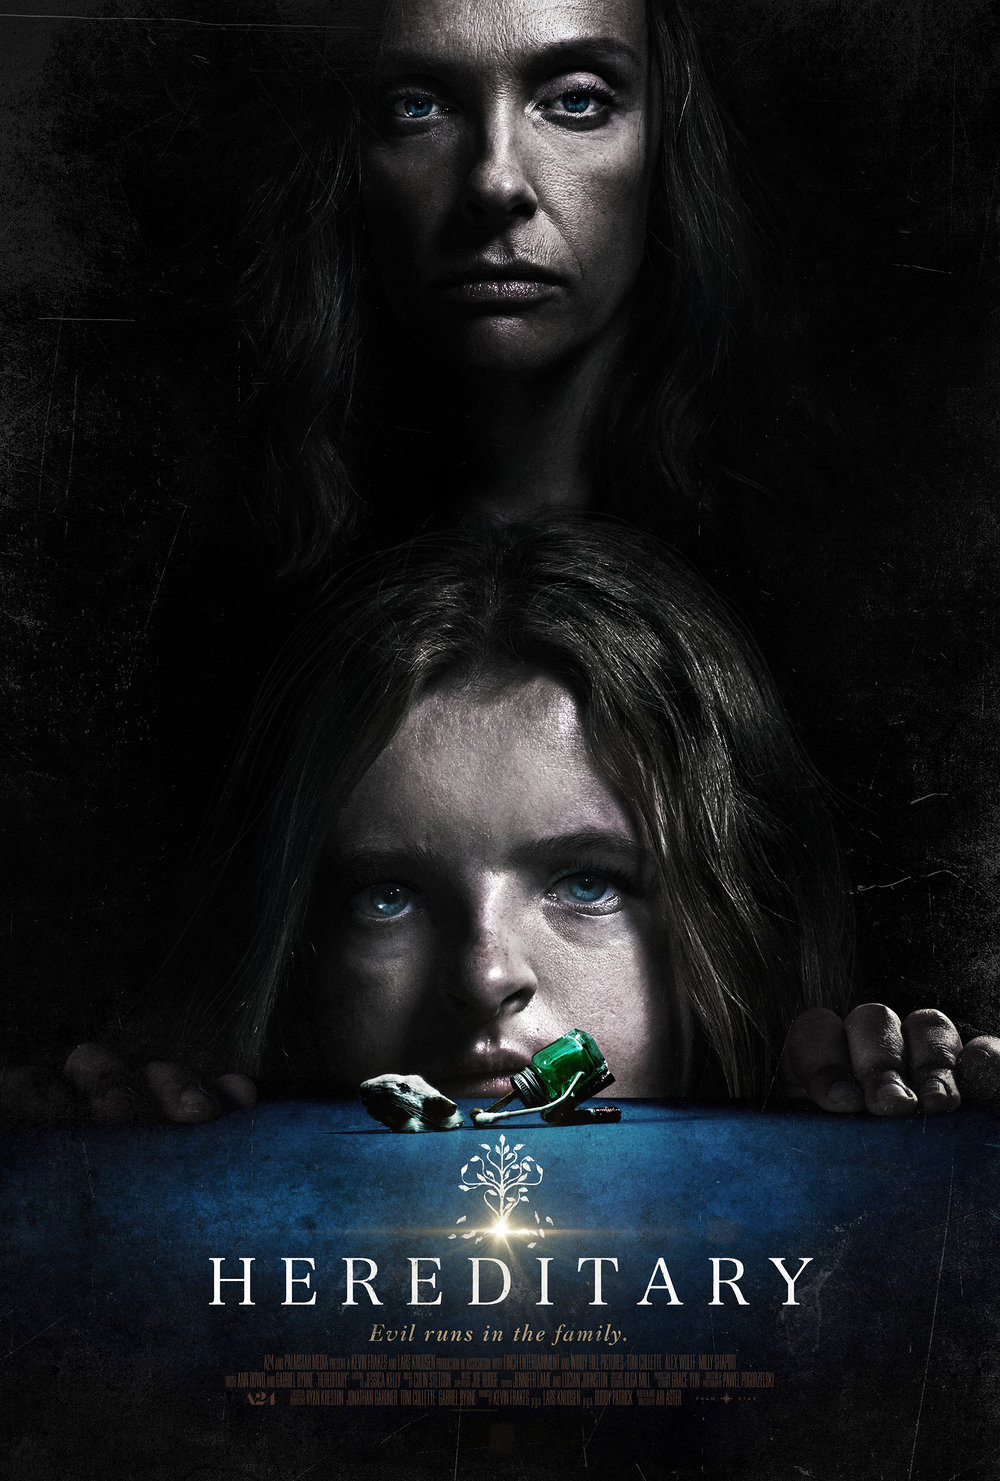 Darkly scary and deeply disturbing, Hereditary is a horror movie that benefits from a couple viewings, but is terrifying enough to let a single viewing stand on its own. Highly recommended for a particular sequence of events midway through the movie that completely change everything that follows in an unpredictable, insane way. -